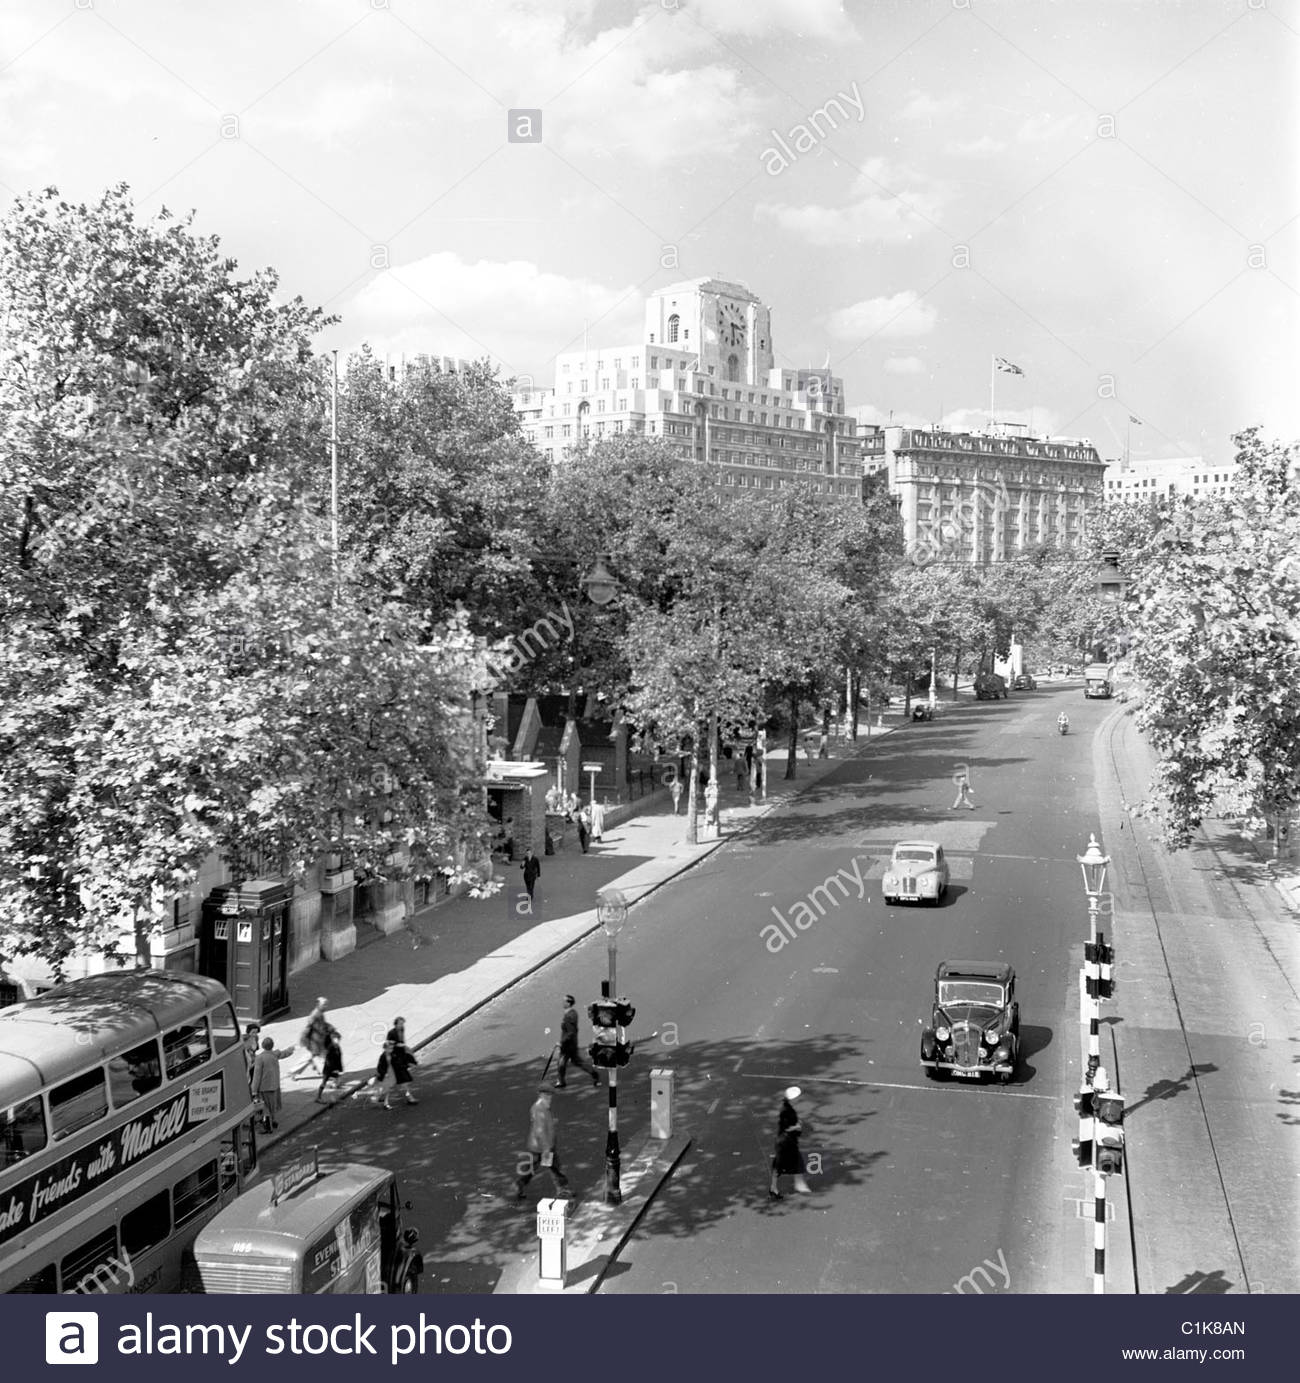 1950s-london-historical-picture-by-j-allan-cash-victoria-embankment-C1K8AN.jpg